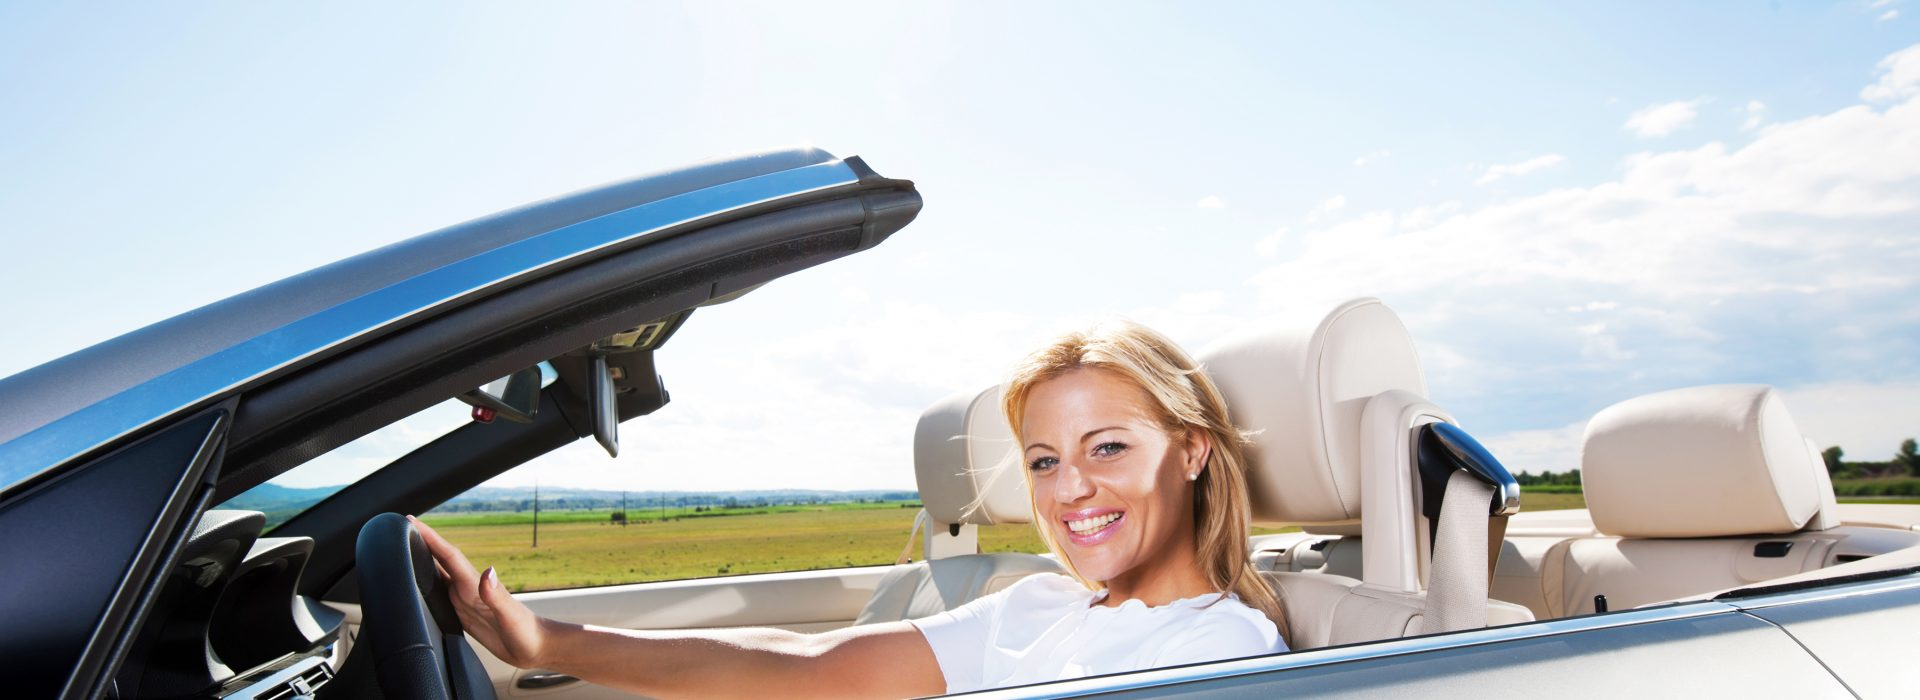 Sun East credit union offers a variety of car loan options.